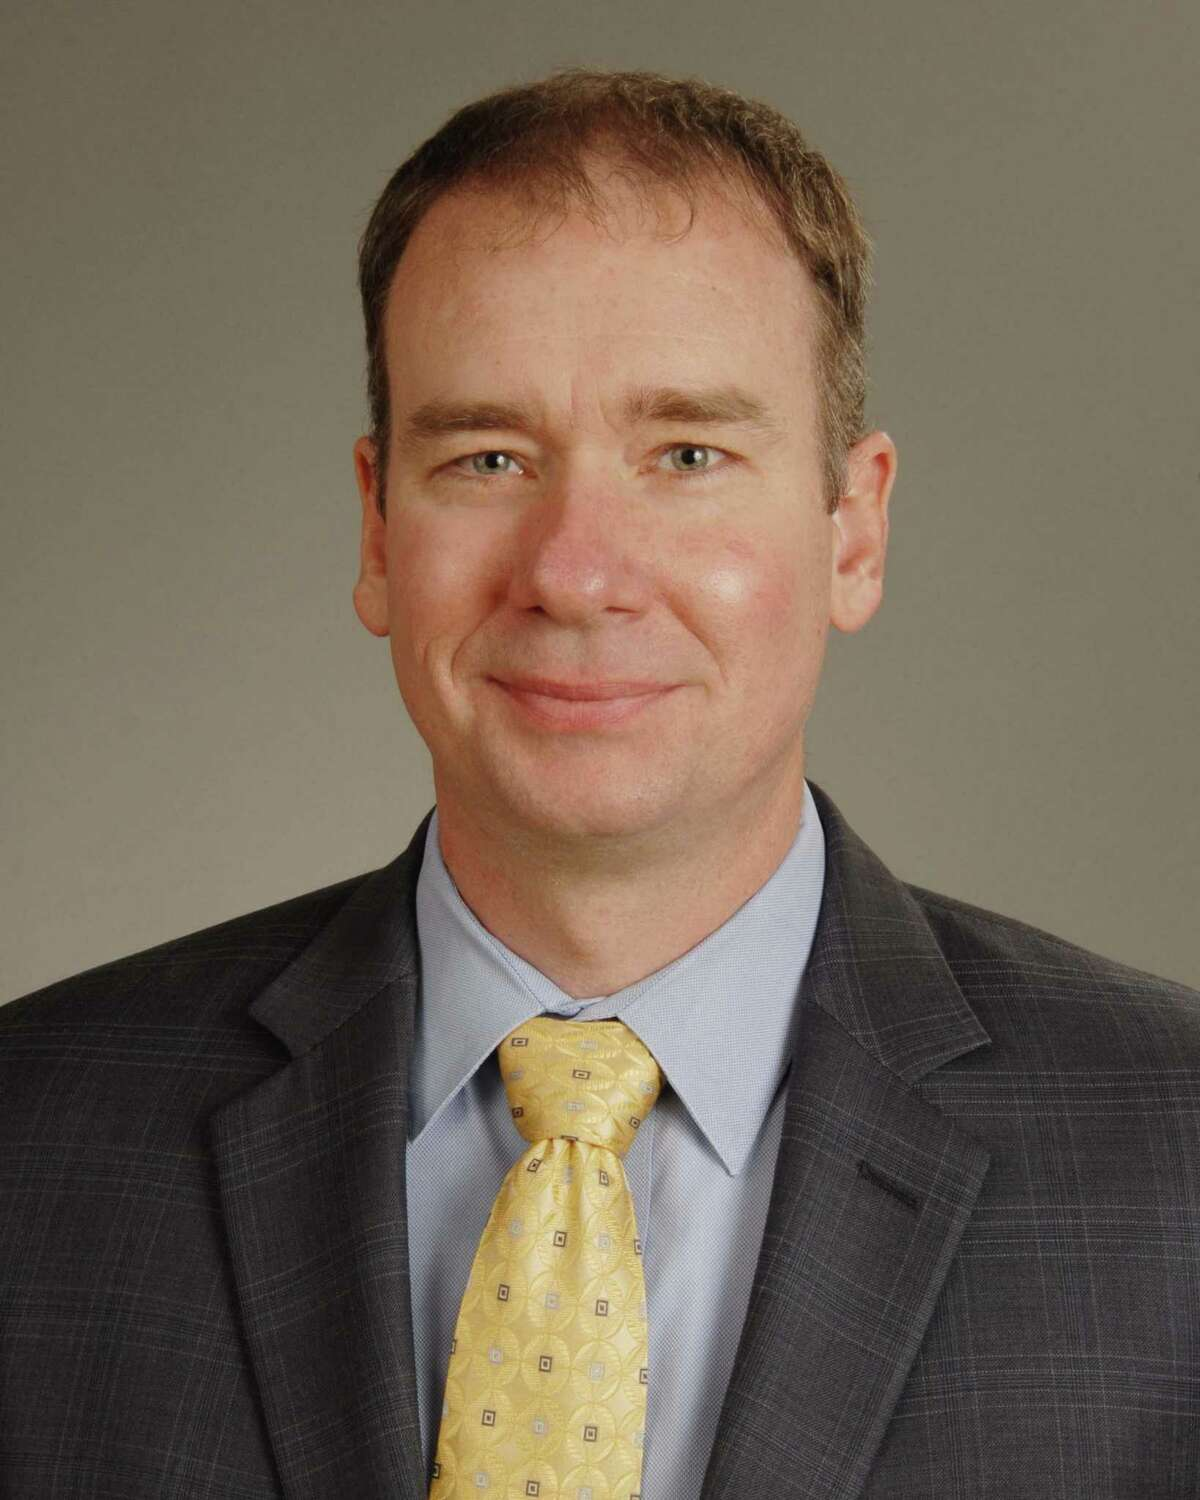 Michael Quinn Sullivan is CEO of Empower Texans, a tea party-aligned group that has spent millions of dollars trying to elect conservative Republicans. An affiliate organization, Texas Scorecard, has fought a loosing battle to obtain press credentials to gain access to the House floor like other media organizations.